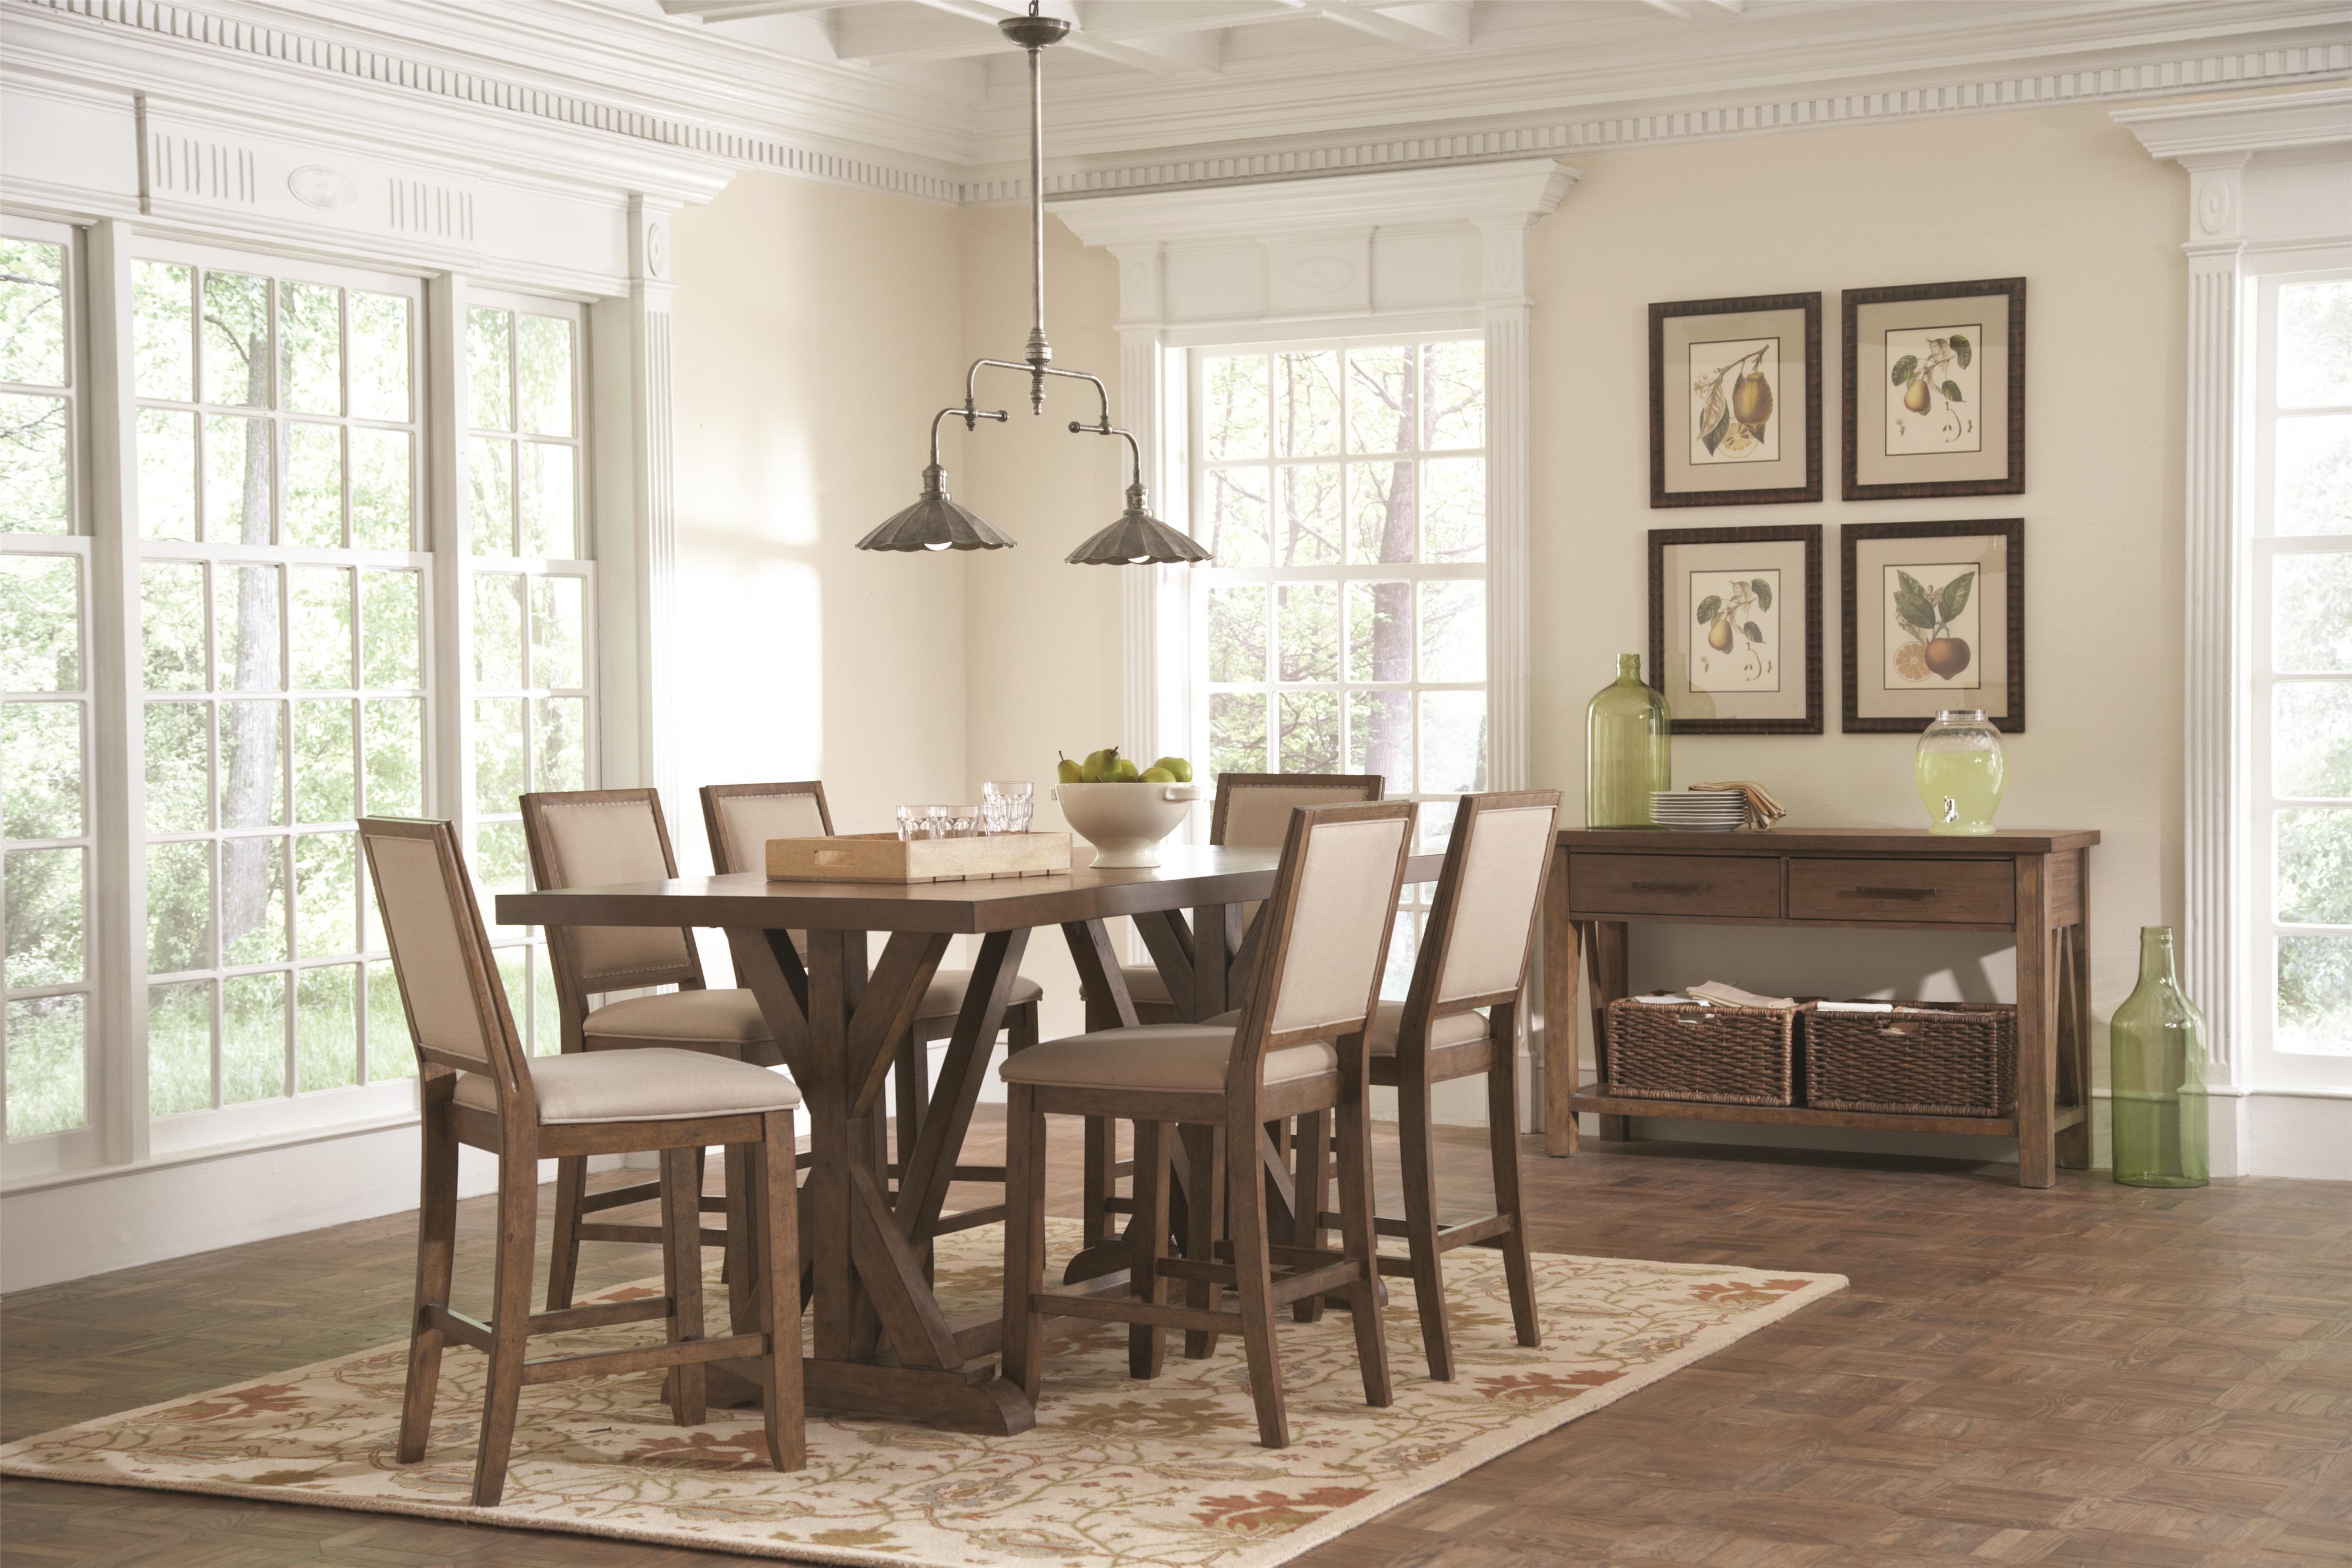 100 Rustic Dining Room Set Rustic Wood Dining Room Tables S